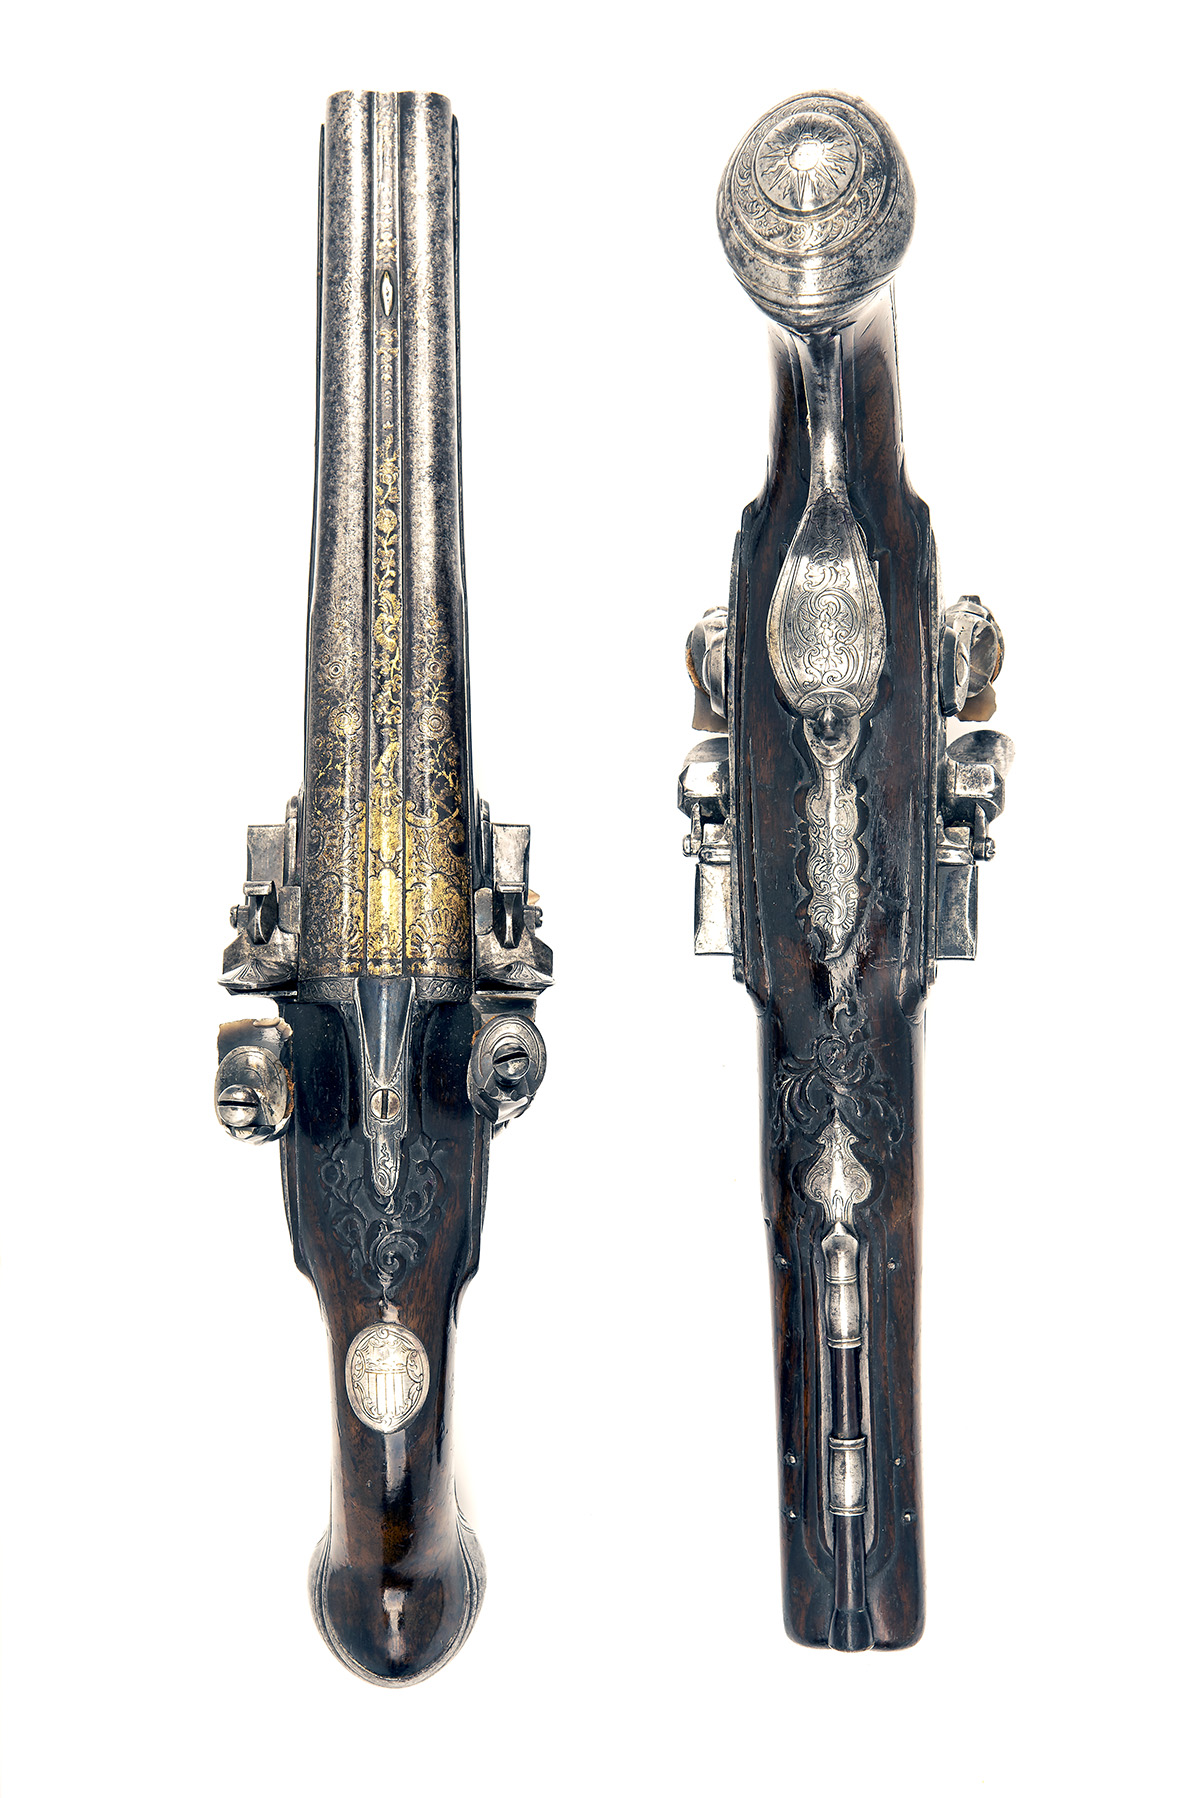 CAIRES, ST ETIENNE, FRANCE A GOOD PAIR OF 28-BORE FLINTLOCK DOUBLE-BARRELLED HOLSTER-PISTOLS, no - Image 3 of 8